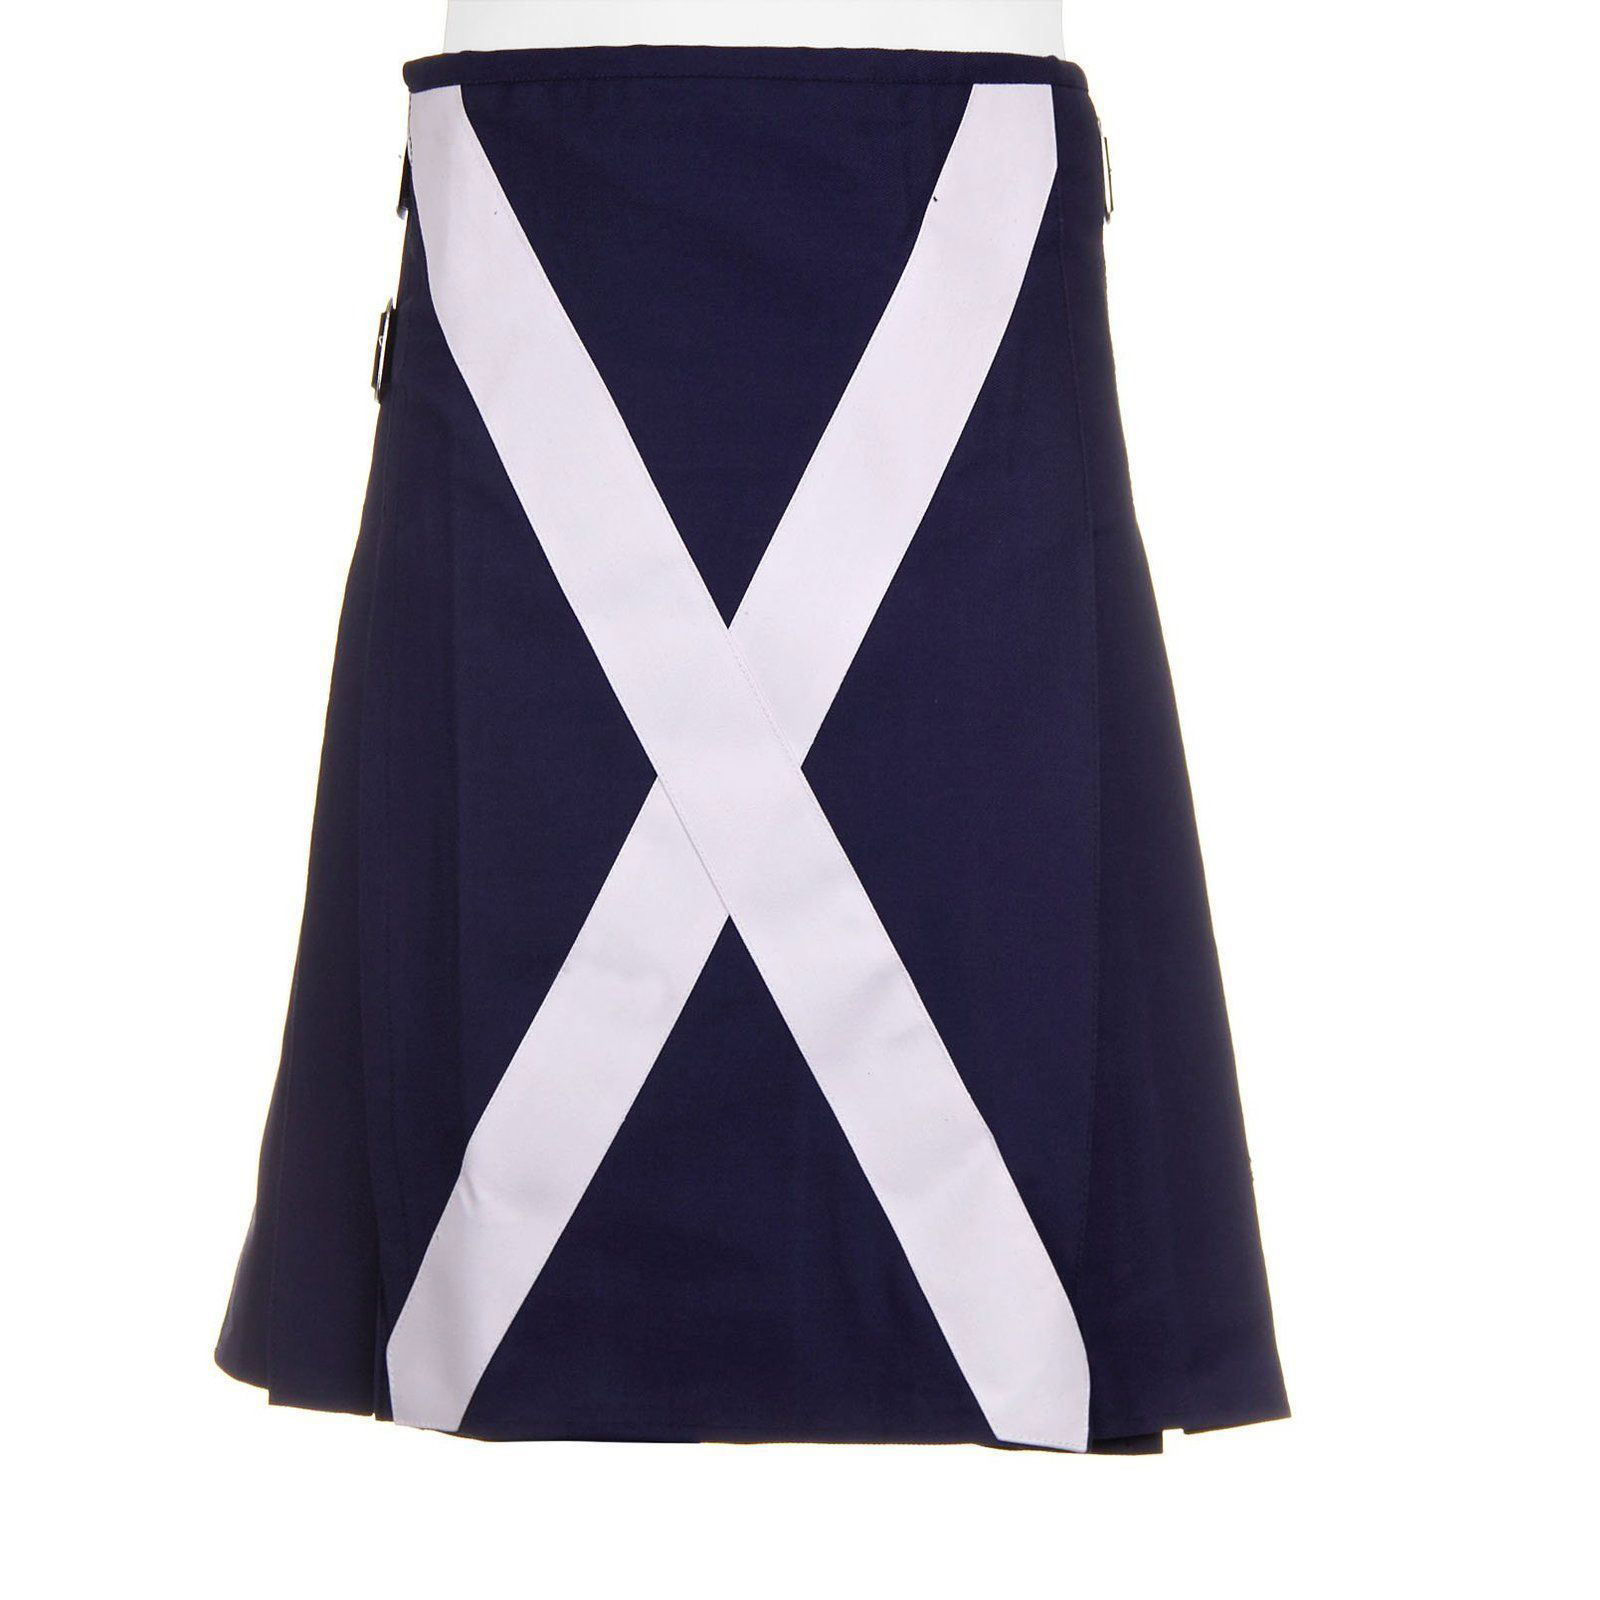 Scottish-Flag-Utility-Kilt